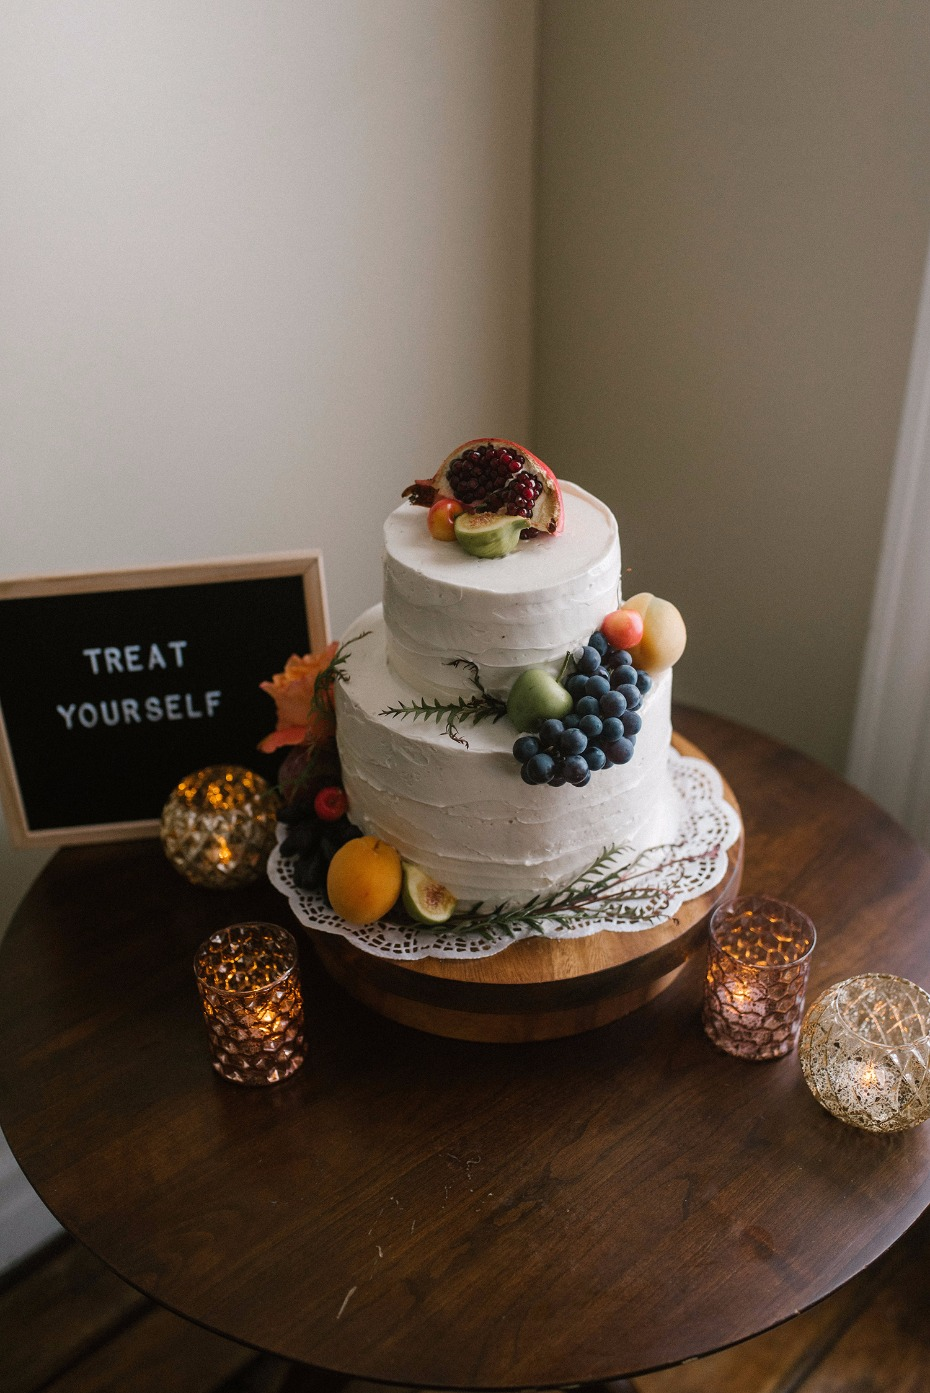 Simple white cake with fruit